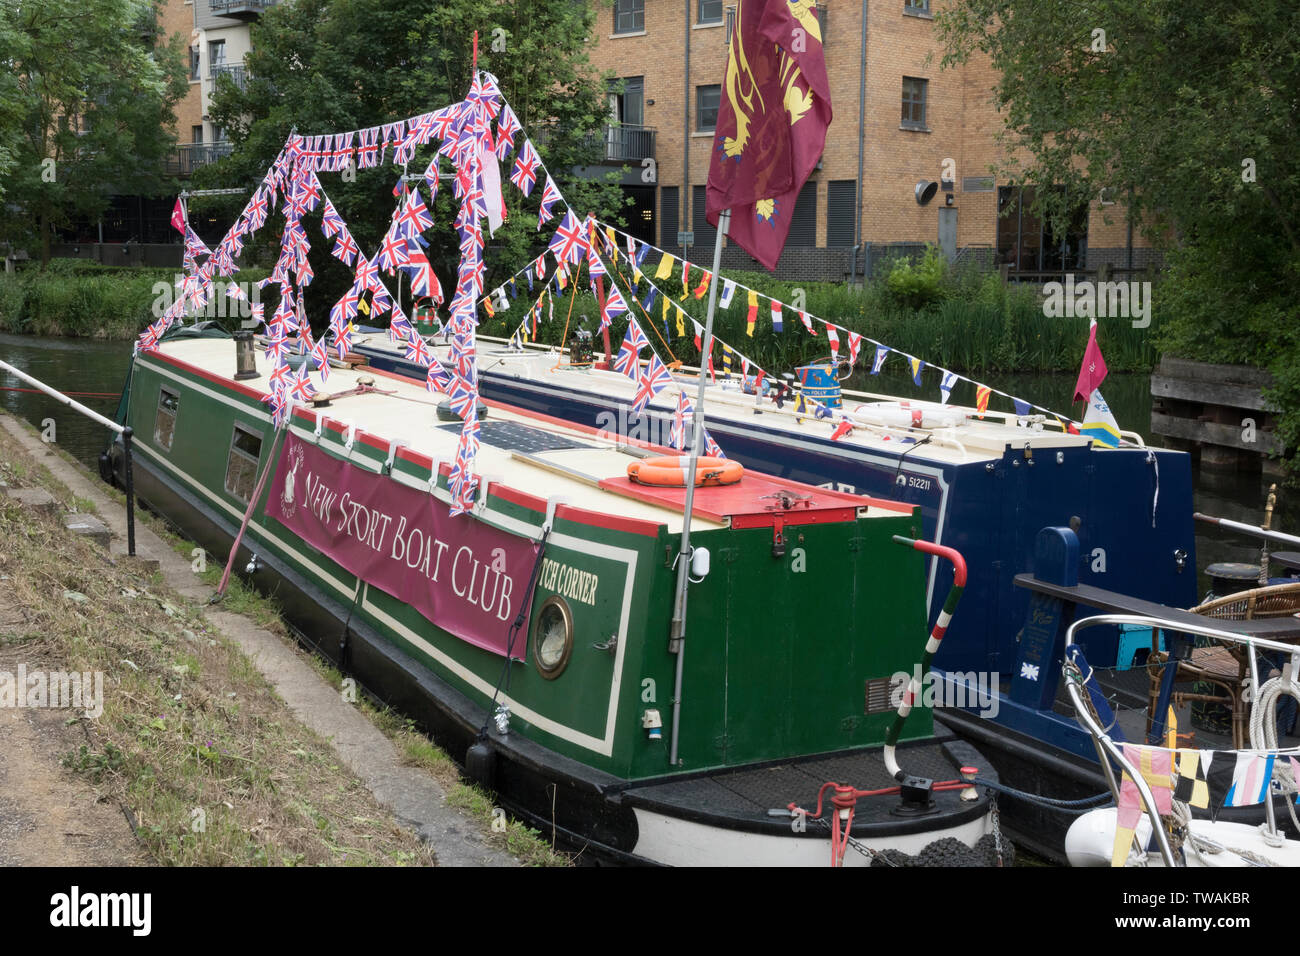 Narrow boats moored on the River Stort in Bishops Stortford, Hertfordshire Stock Photo